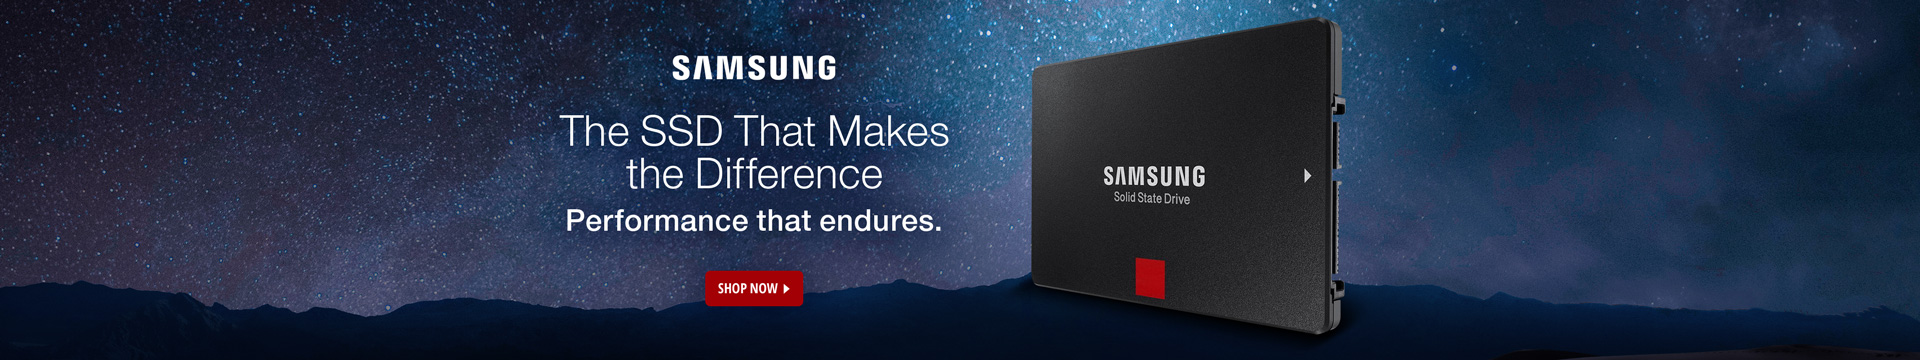 Samsung The SSD that makes the difference